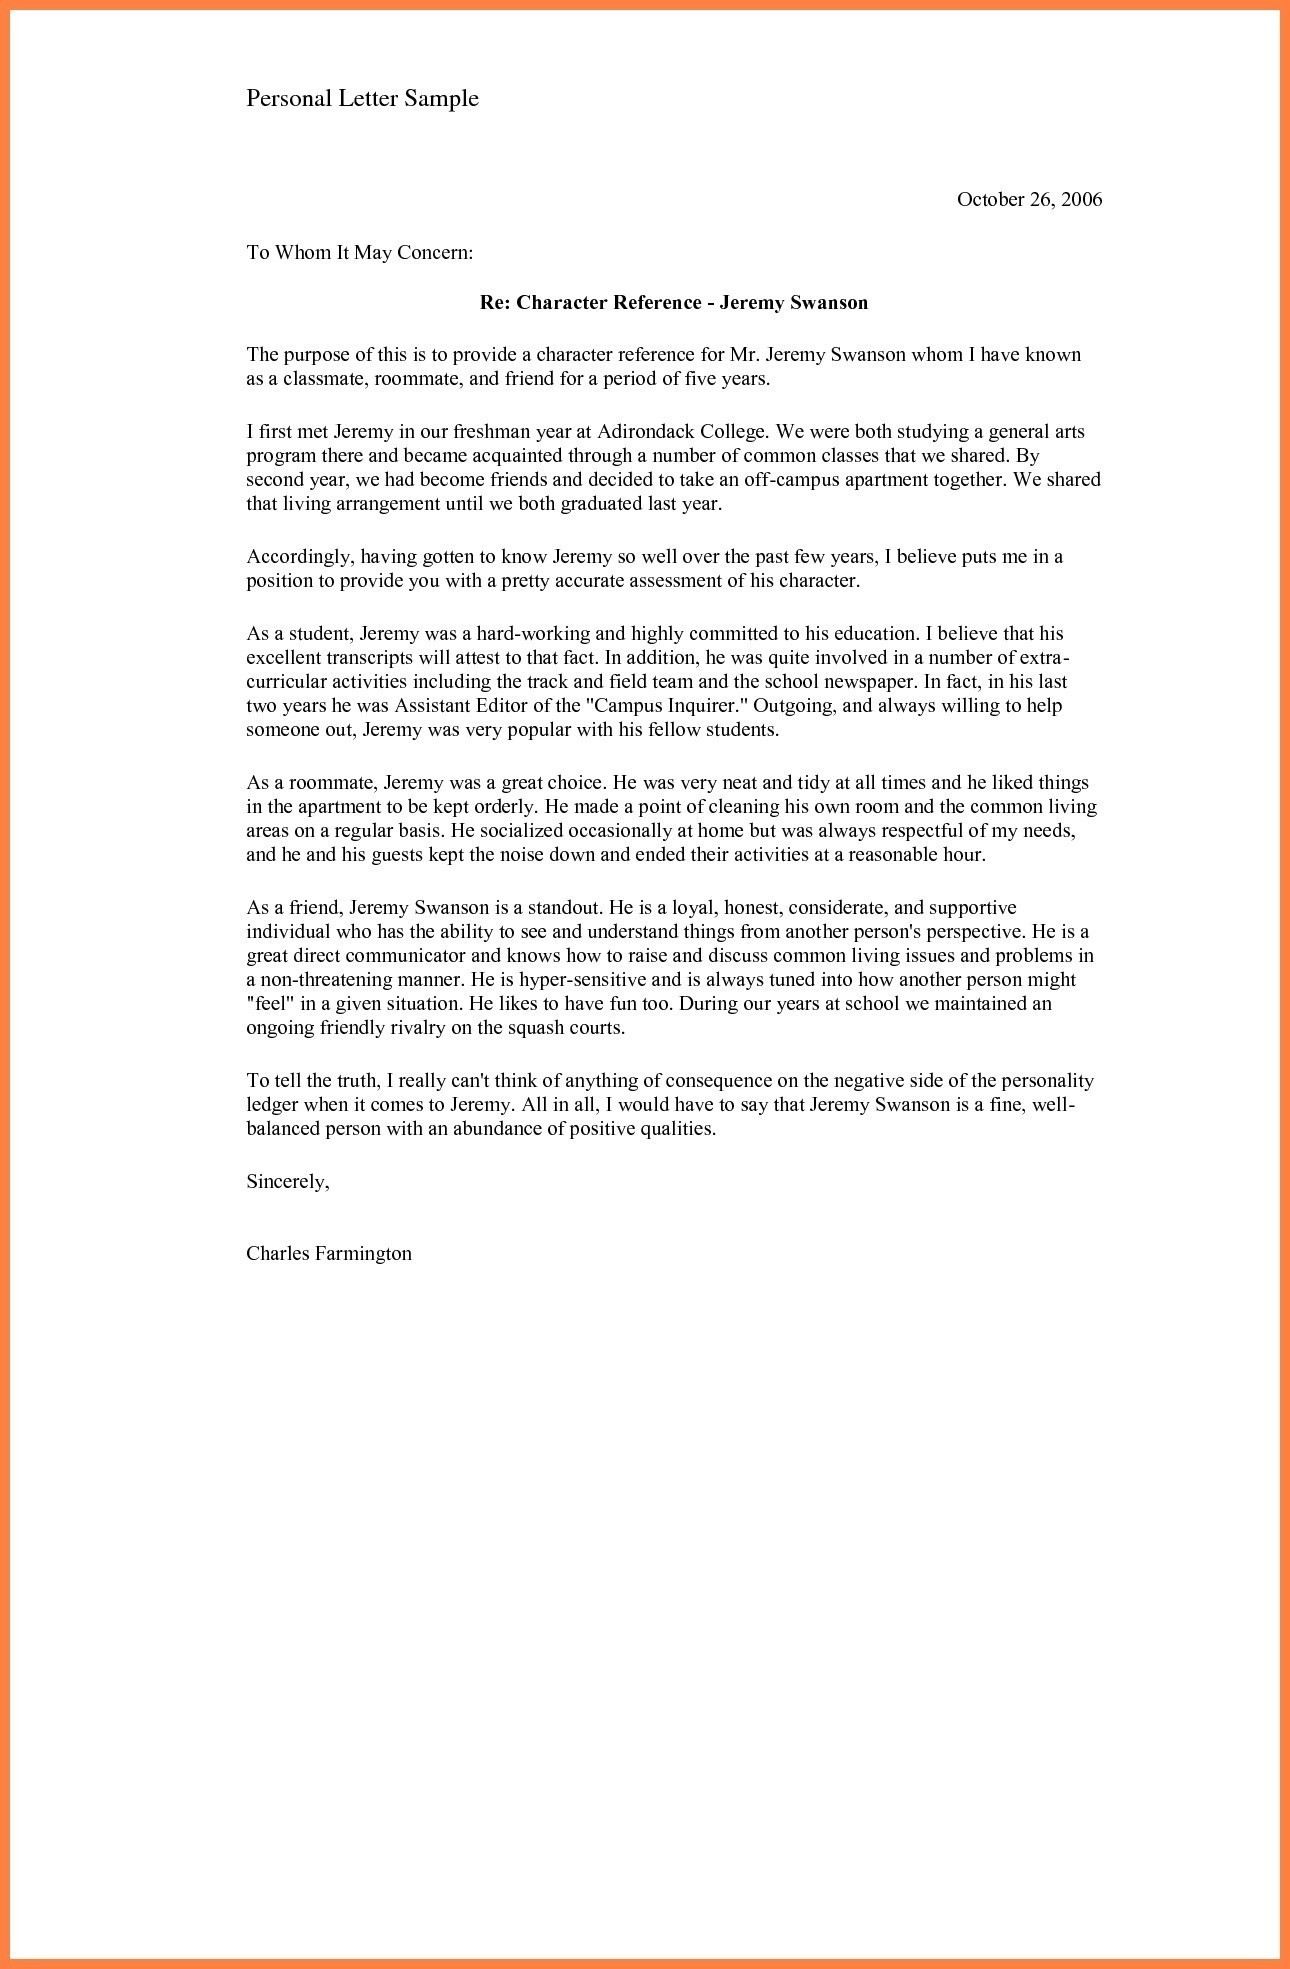 Personal Reference Letter for A Friend Template - Sample Certificate Good Moral Character for School C as Template